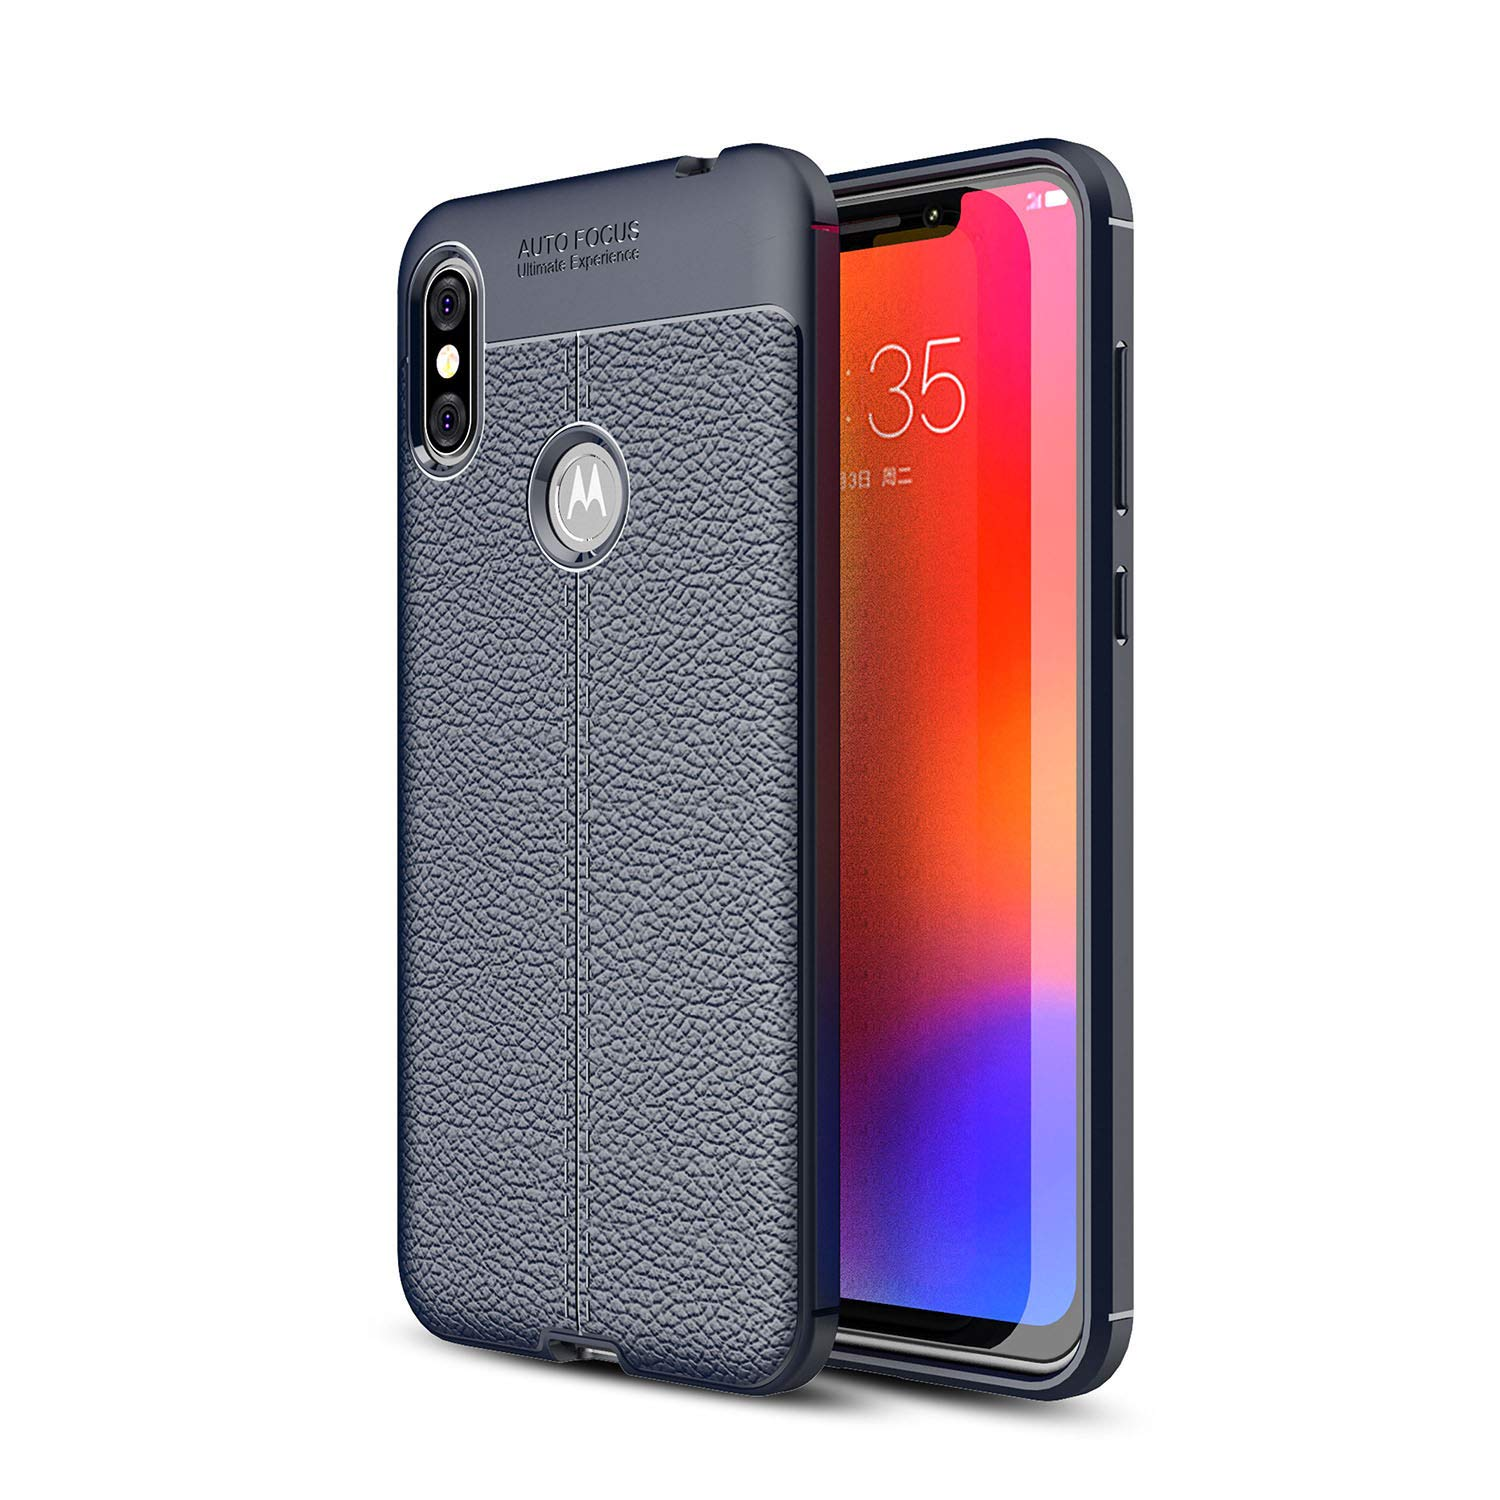 DEVMO Phone Case Compatible with Moto One Power TPU Bionic Leather Gel Rubber Full Body Protection Shockproof Cover Case Drop Protection Black